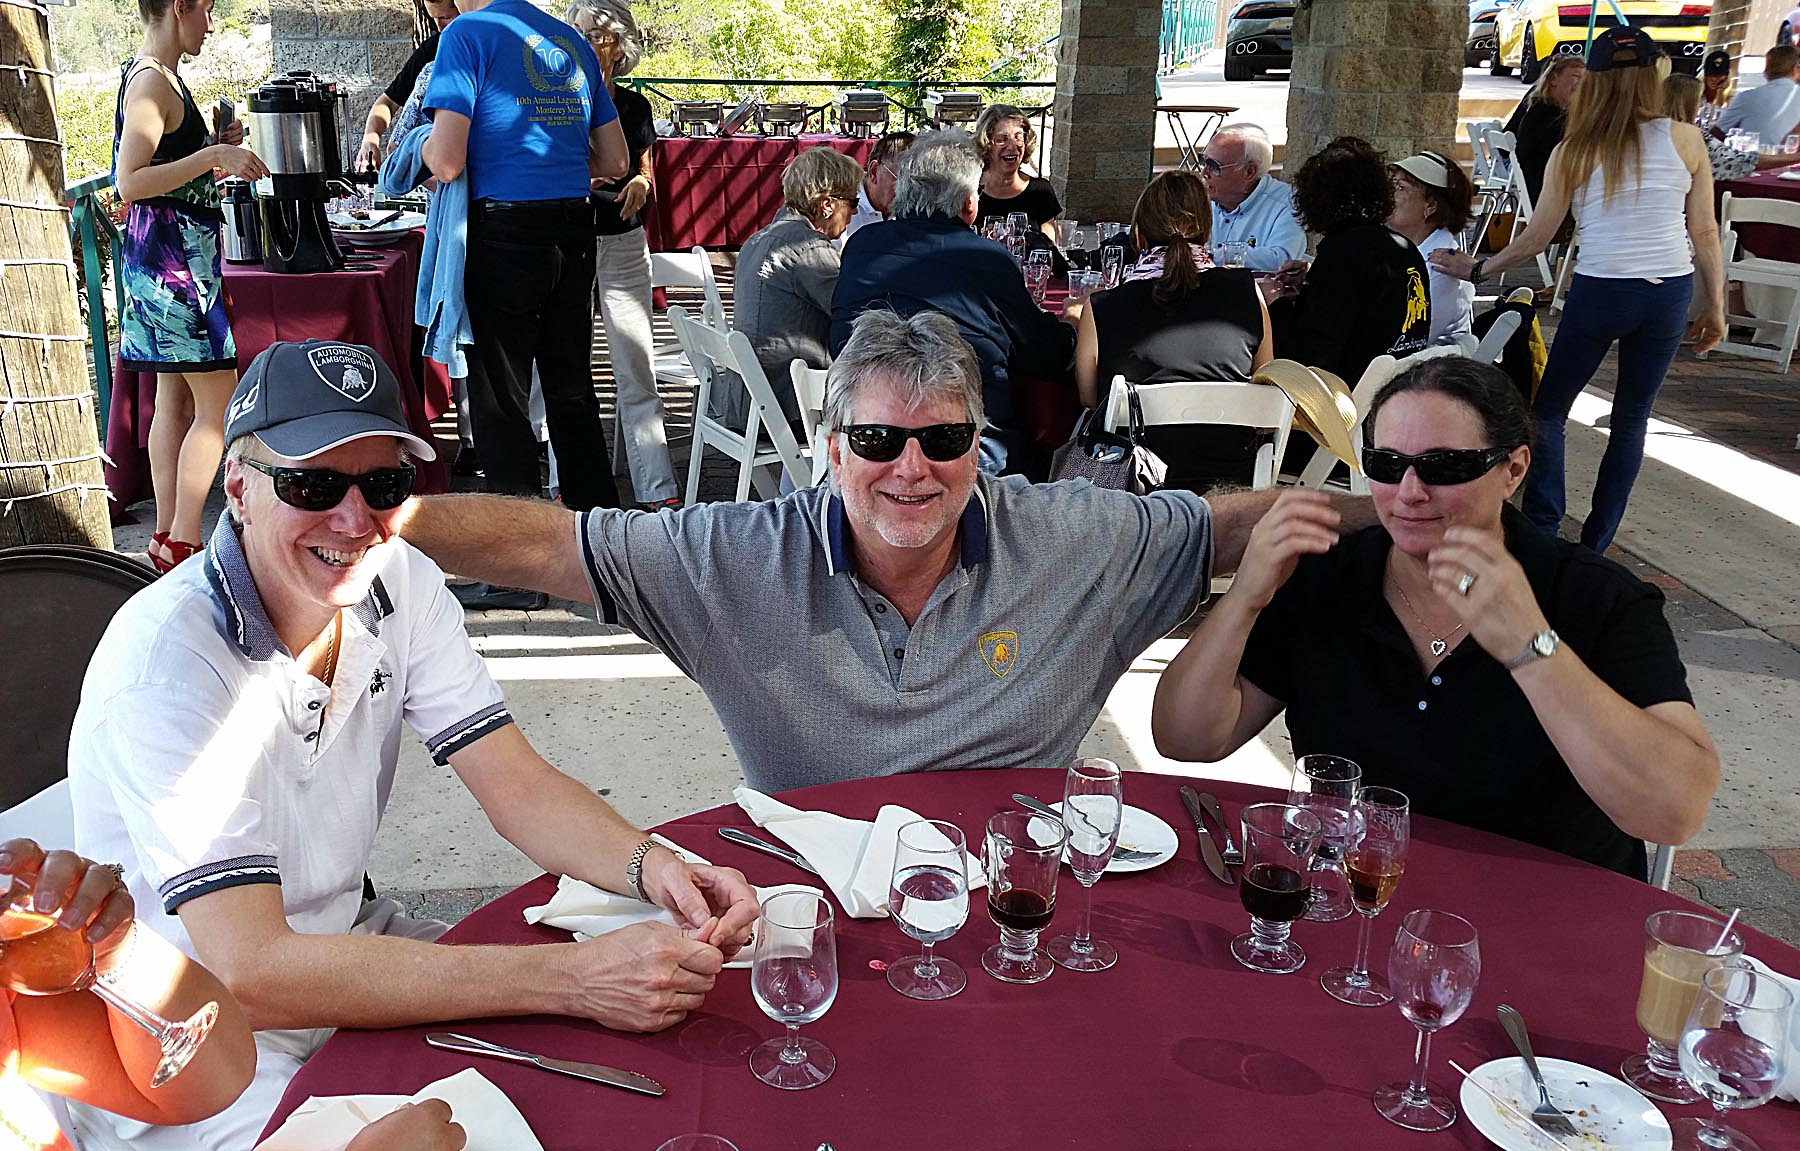 John Yardum, Ken, and Sue Blackman at the Winery